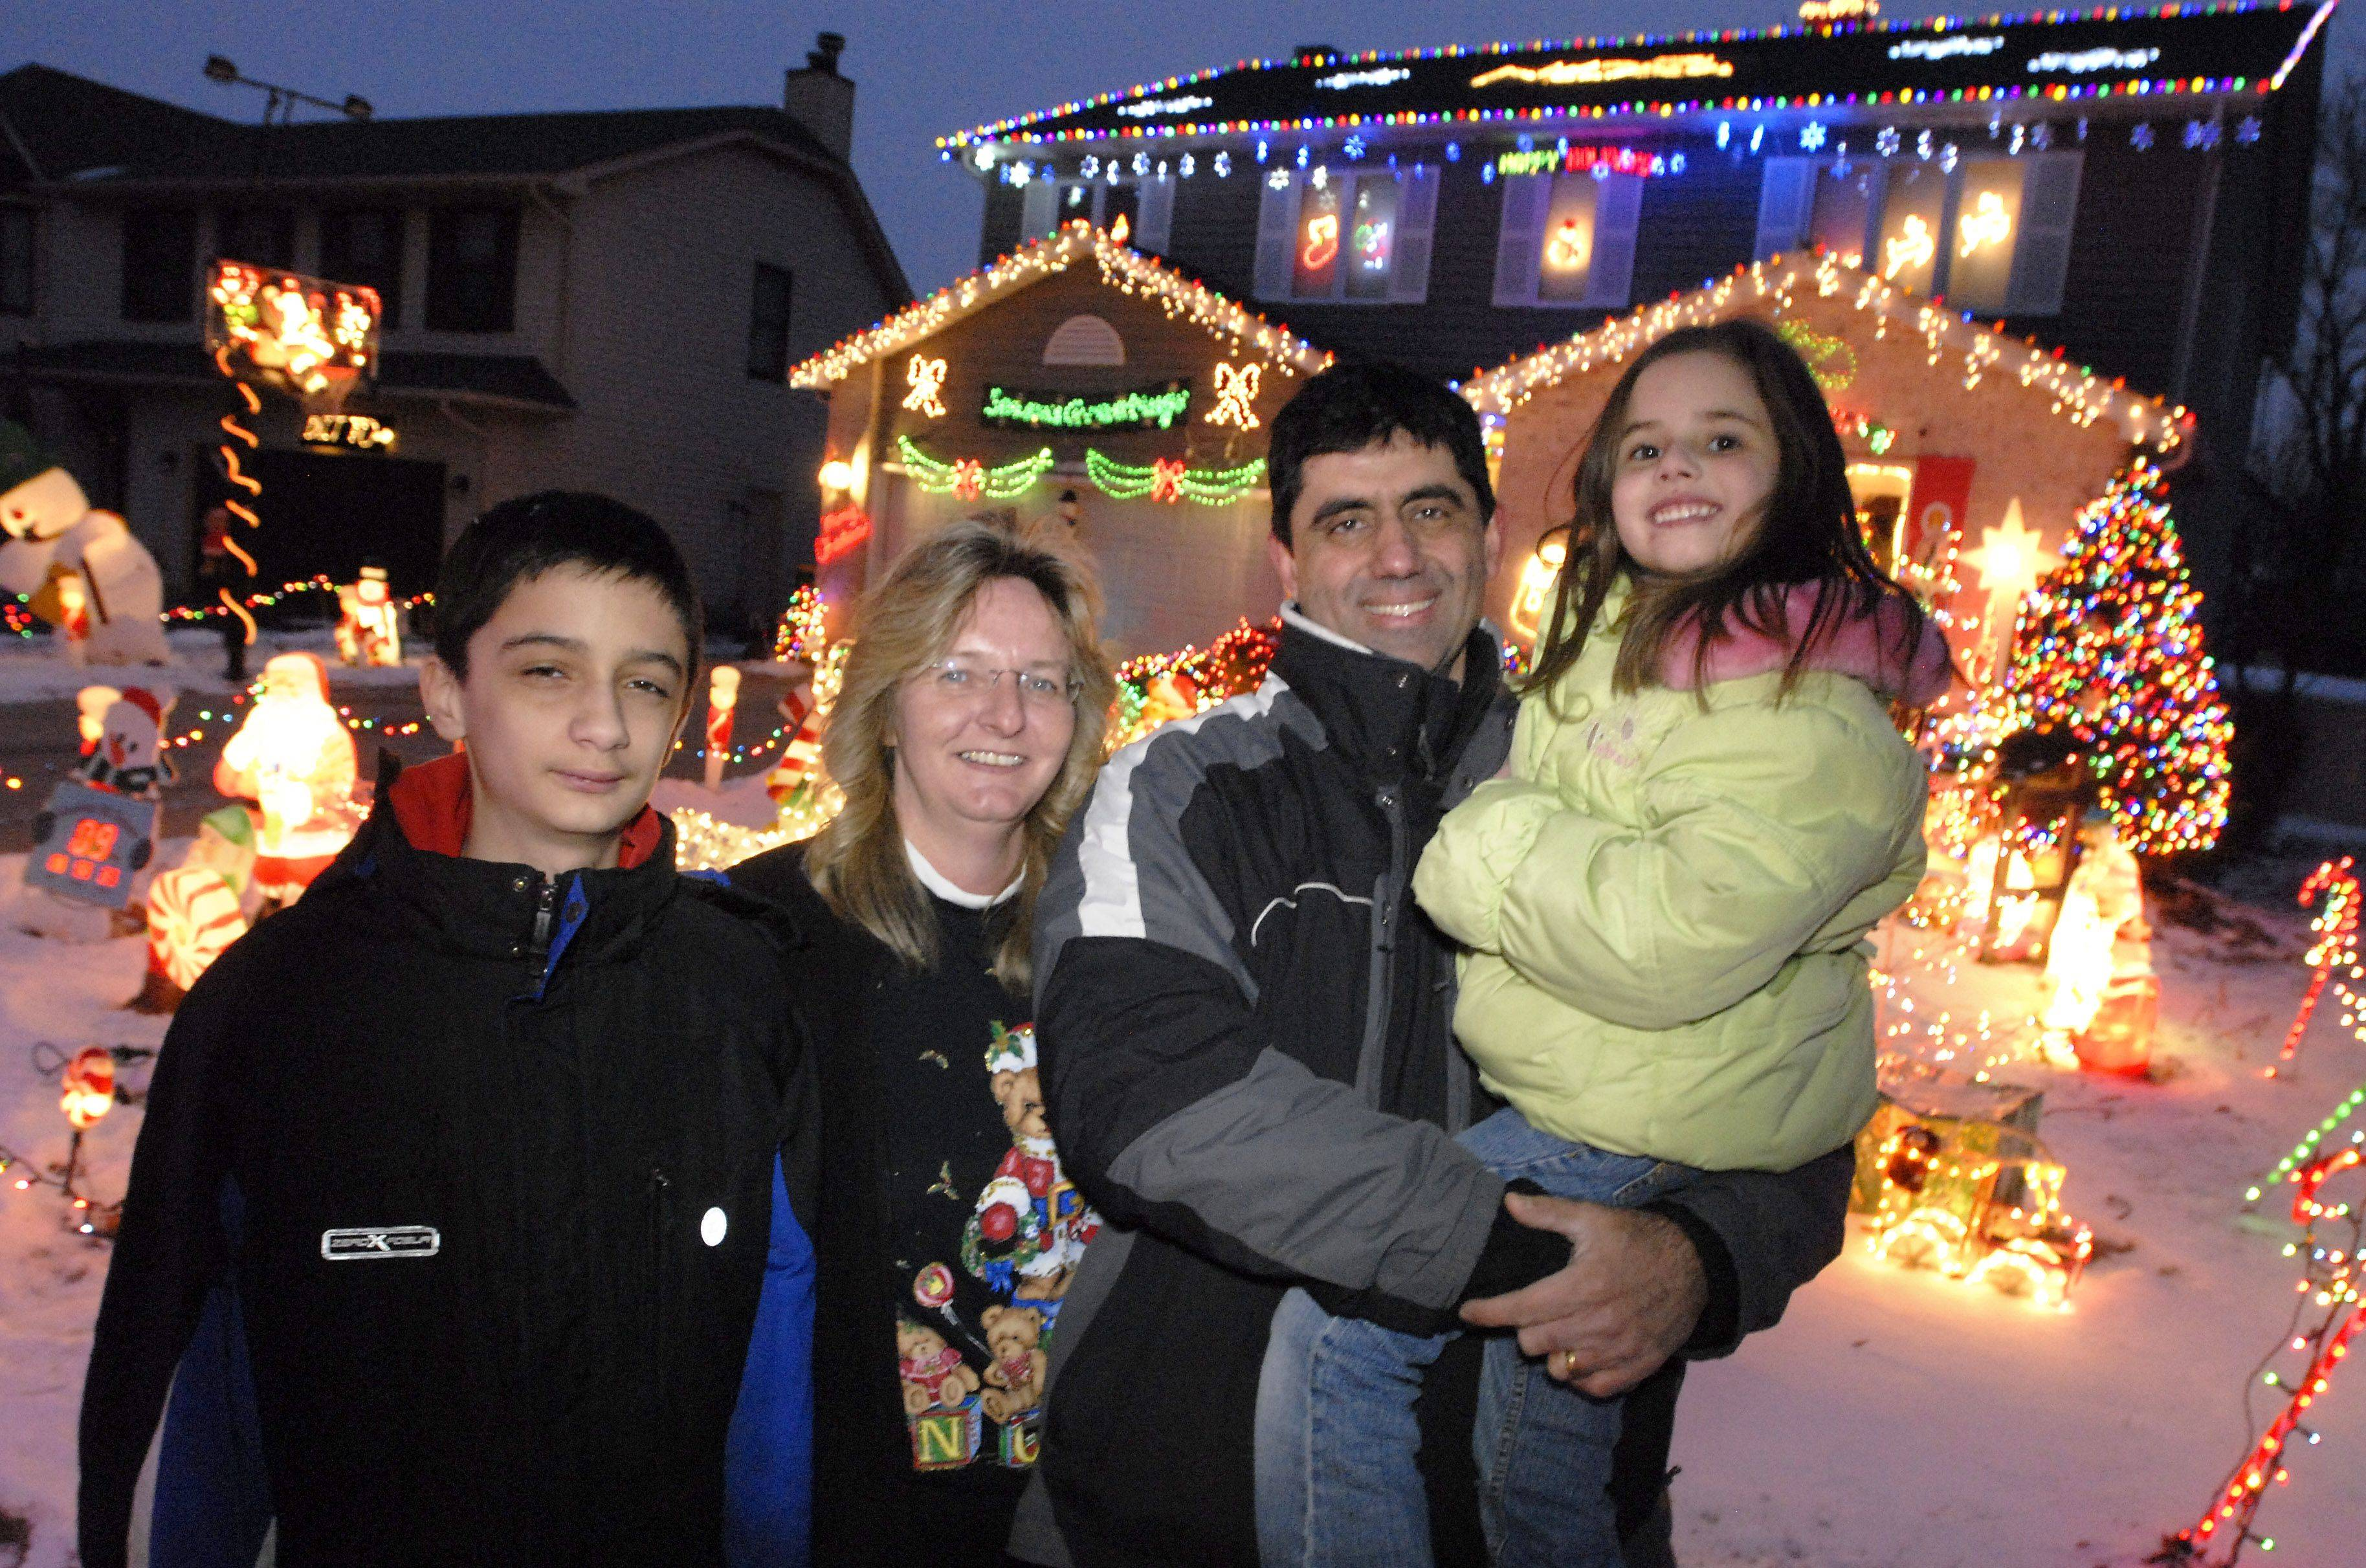 Jennifer and Bill Kyprianidis and children William, 12, and Nia, 5, needed three weeks to put up all the decorations at their Elk Grove Village home.